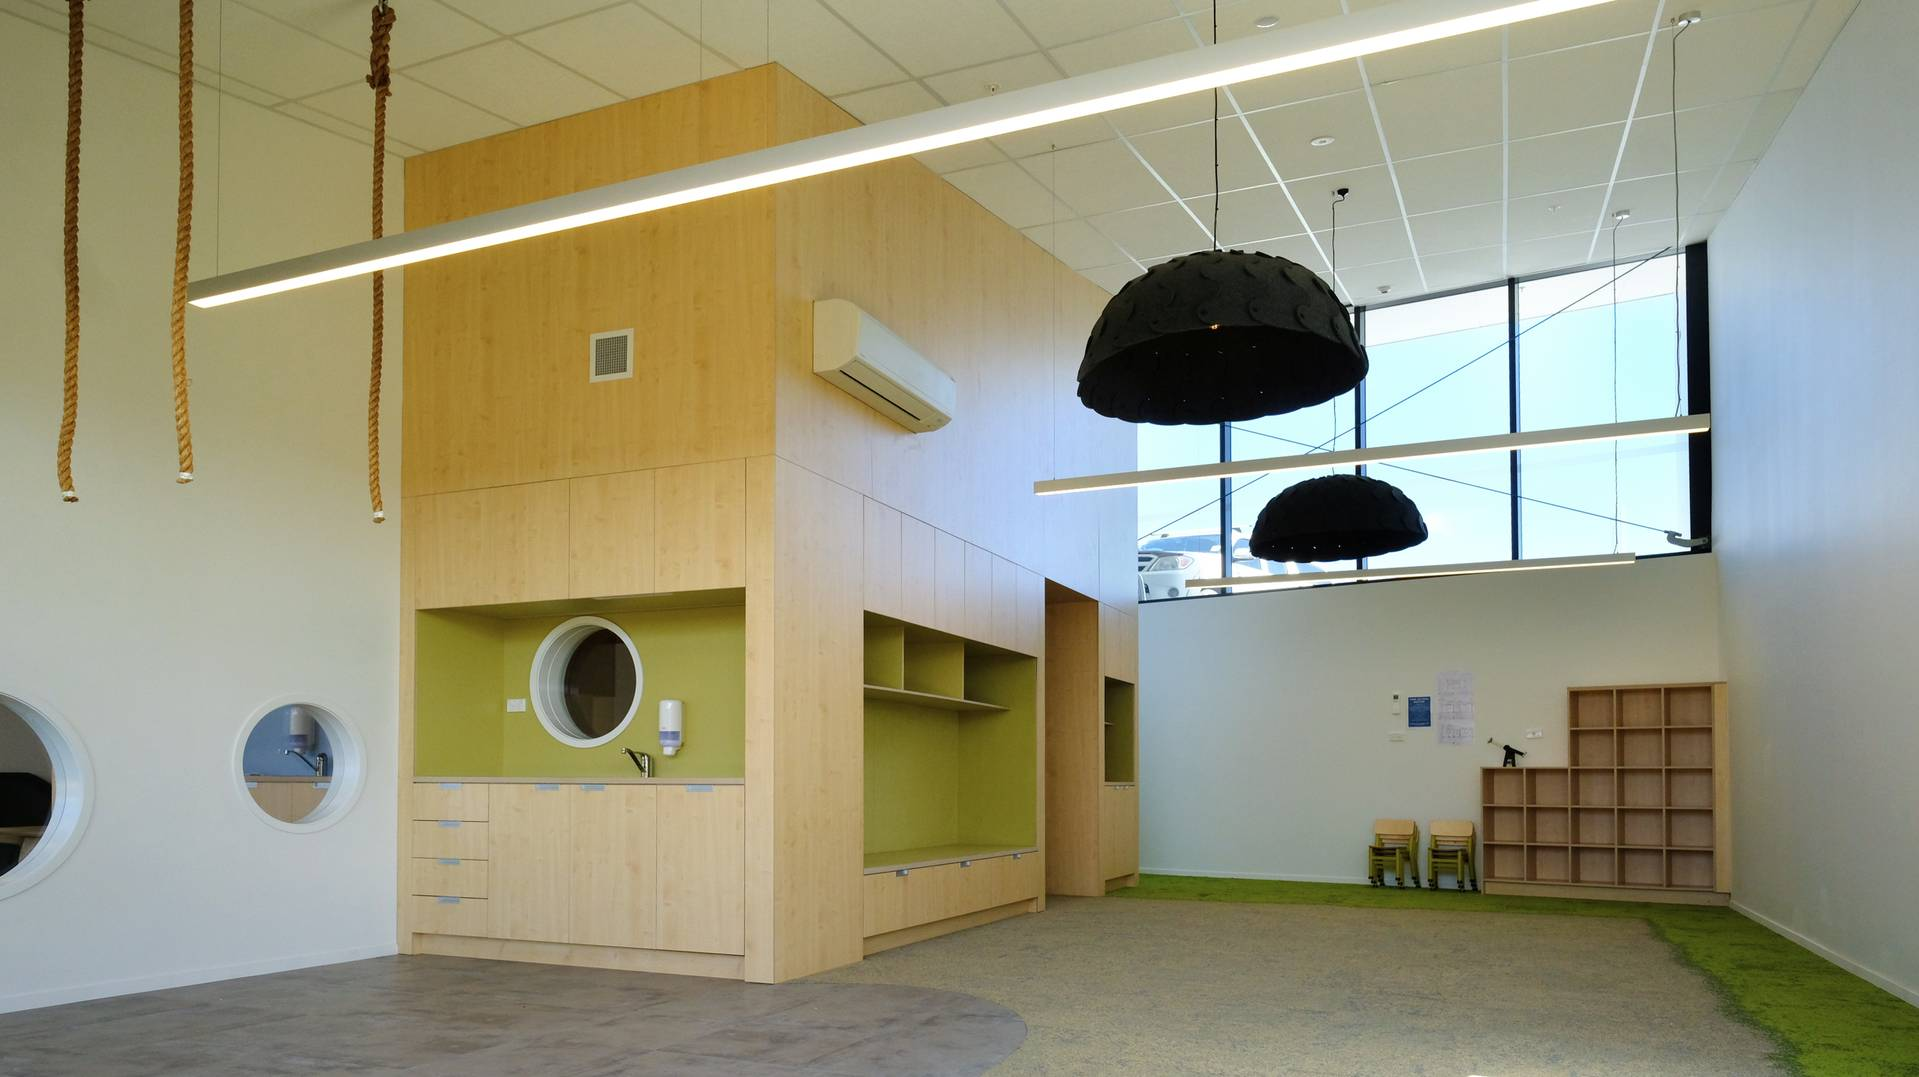 Silverdale Child Care by Herbst Maxcey Metropolitan Architects